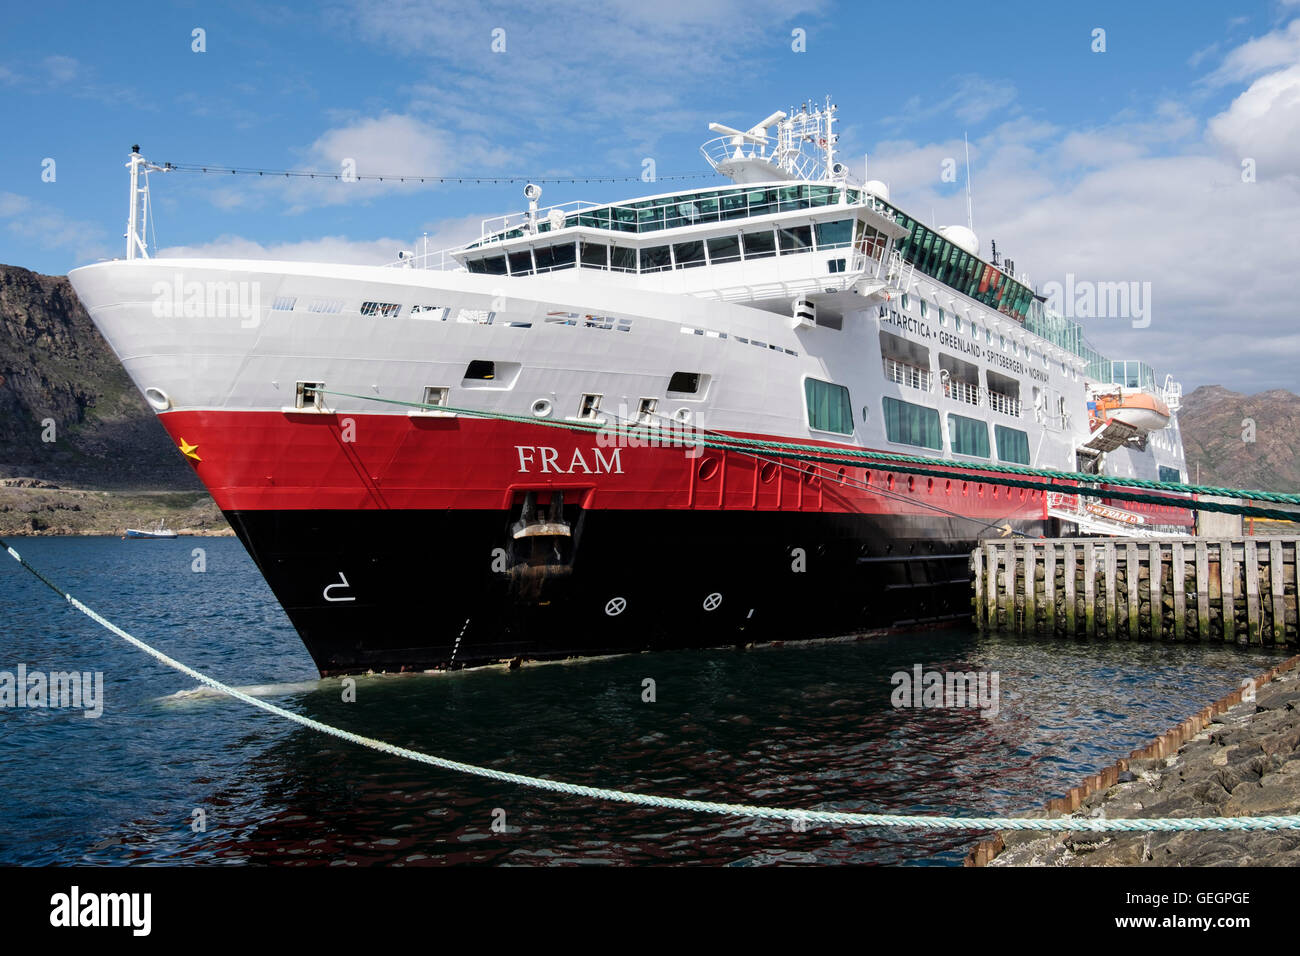 Hurtigruten MS Fram explorer cruise ship docked on quayside in port of Sisimiut (Holsteinsborg), Qeqqata, West Greenland - Stock Image